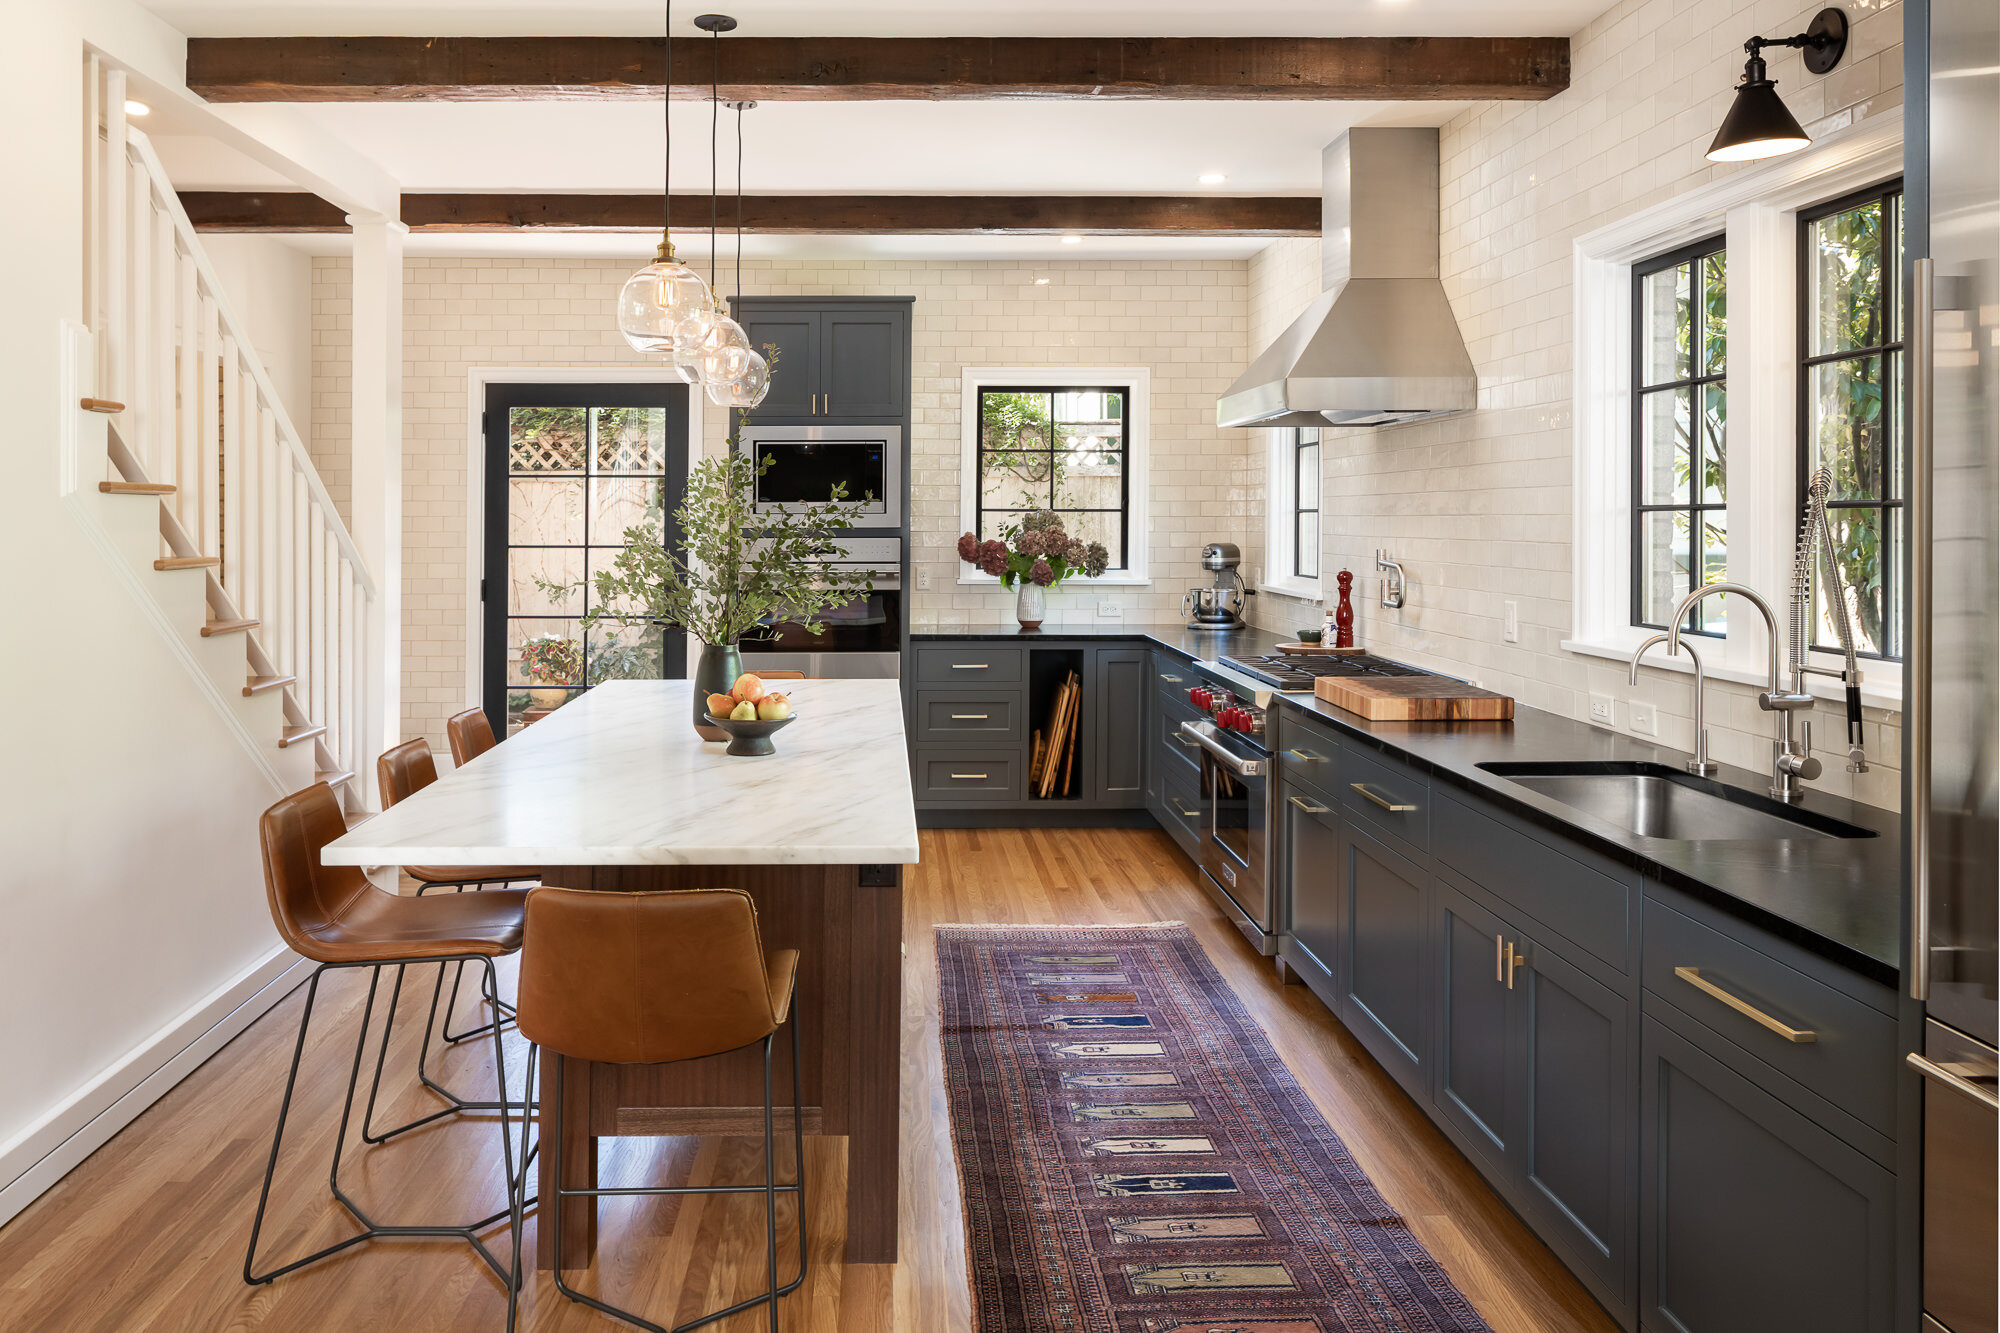 Tempest Tileworks 3x6 Dove Gloss / Kitchen Design: Molly Littlejohn Design / Photography: Spin Photography